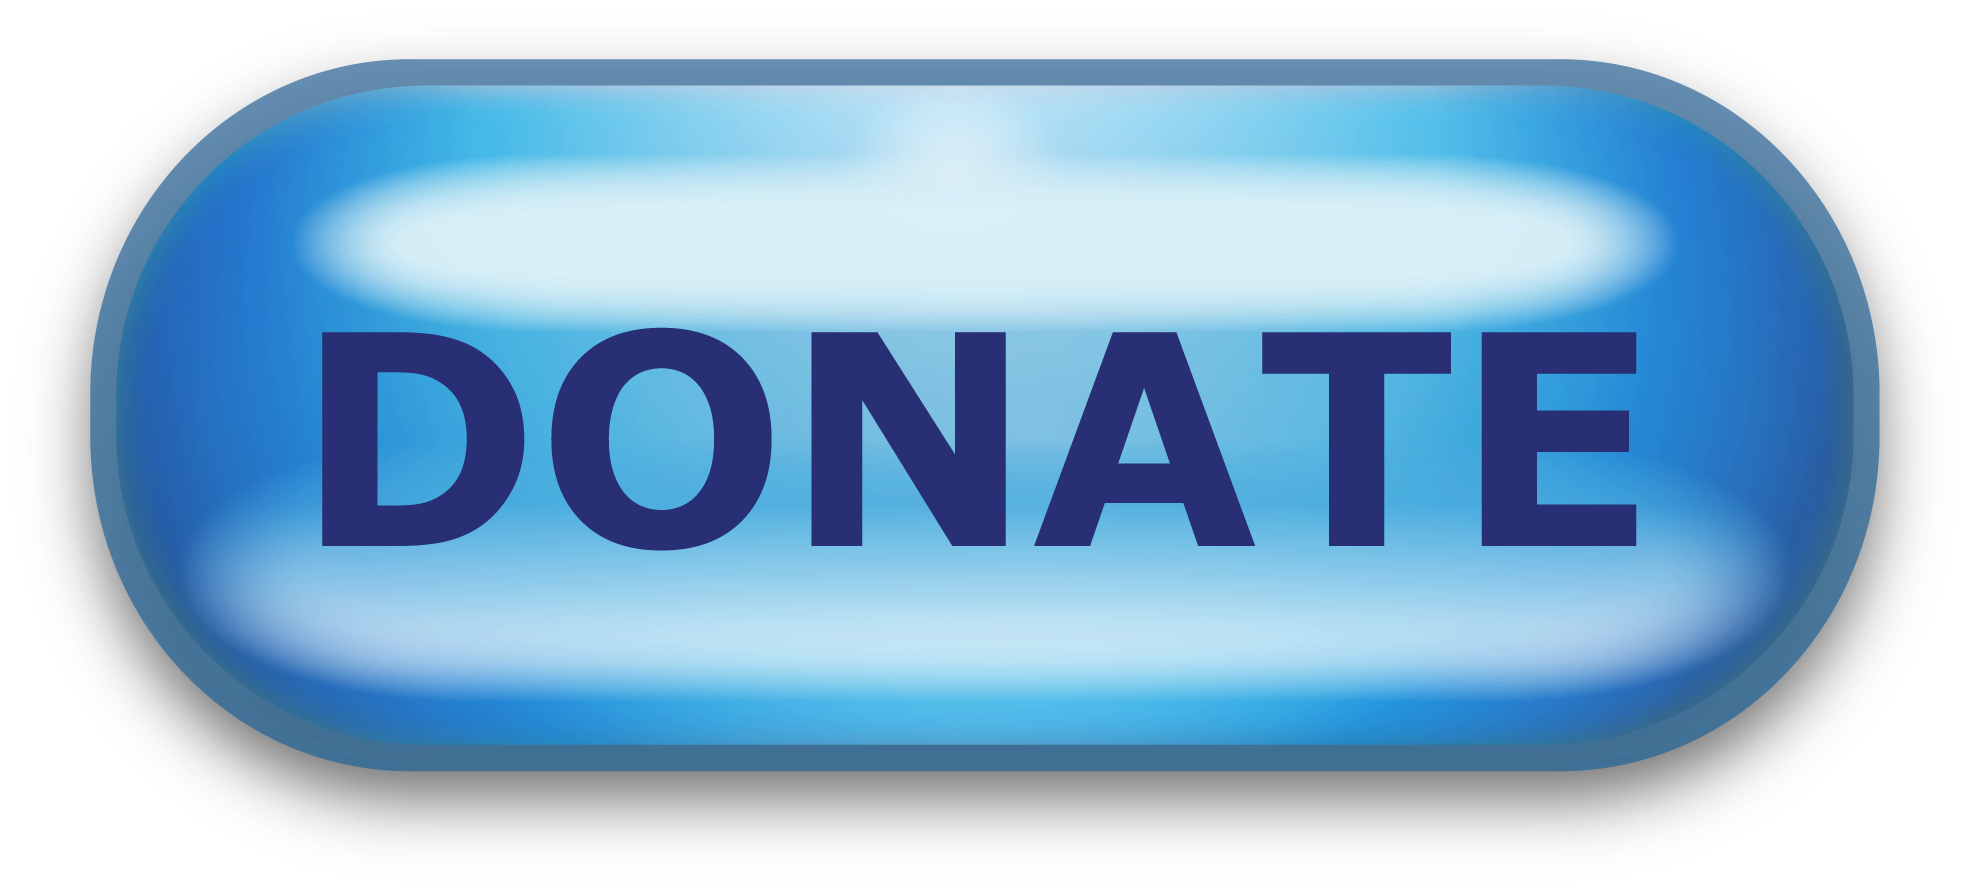 donate-button-image-7.png